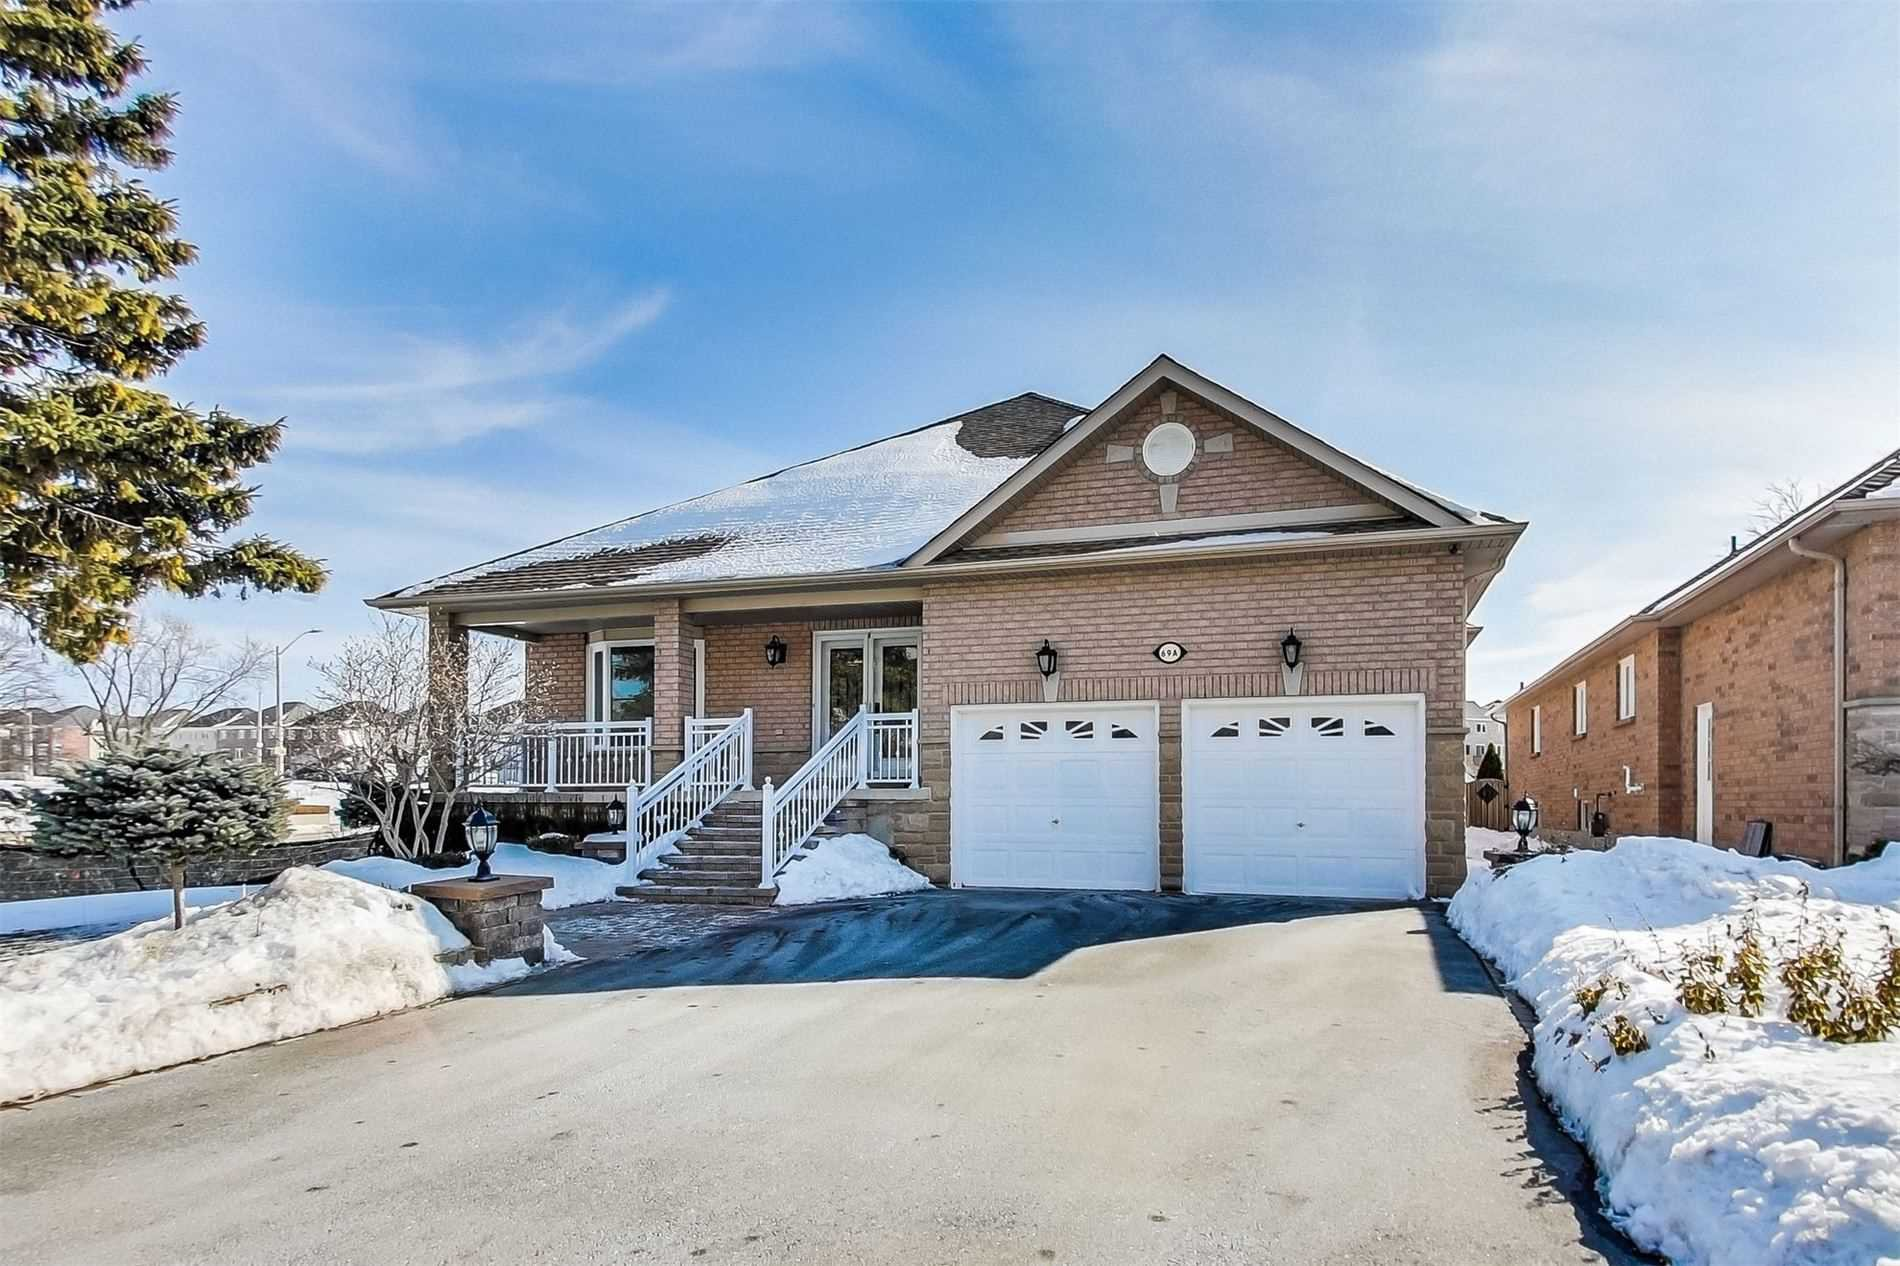 Main Photo: 69A Puccini Drive in Richmond Hill: Oak Ridges House (Bungalow) for sale : MLS®# N4702209